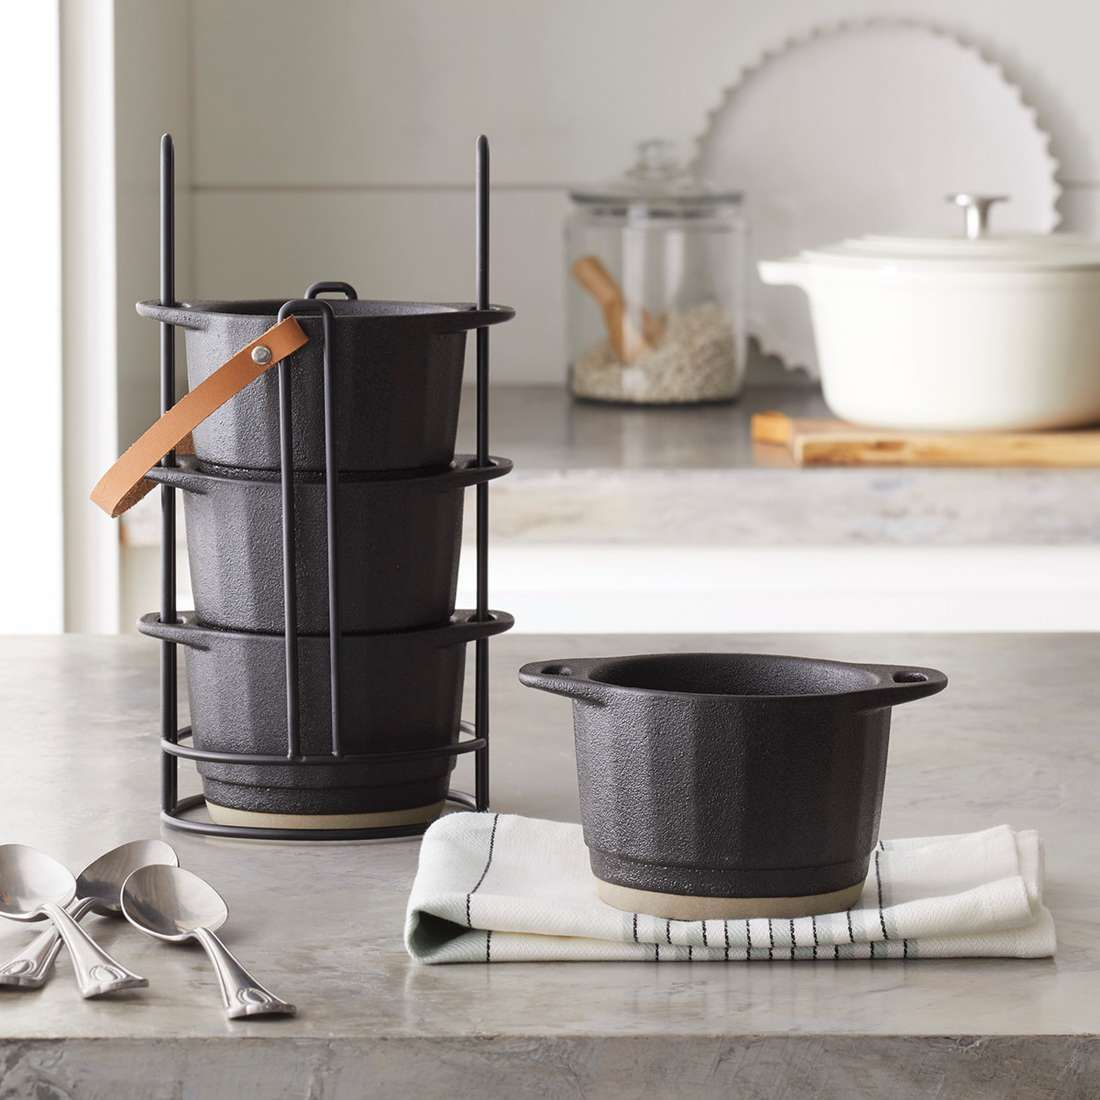 Shop Hearth Hand With Magnolia Joanna S Favorites Only At Target Start The Season In The Most Springful Way With The New Home Co Soup Bowl Hearth Stoneware